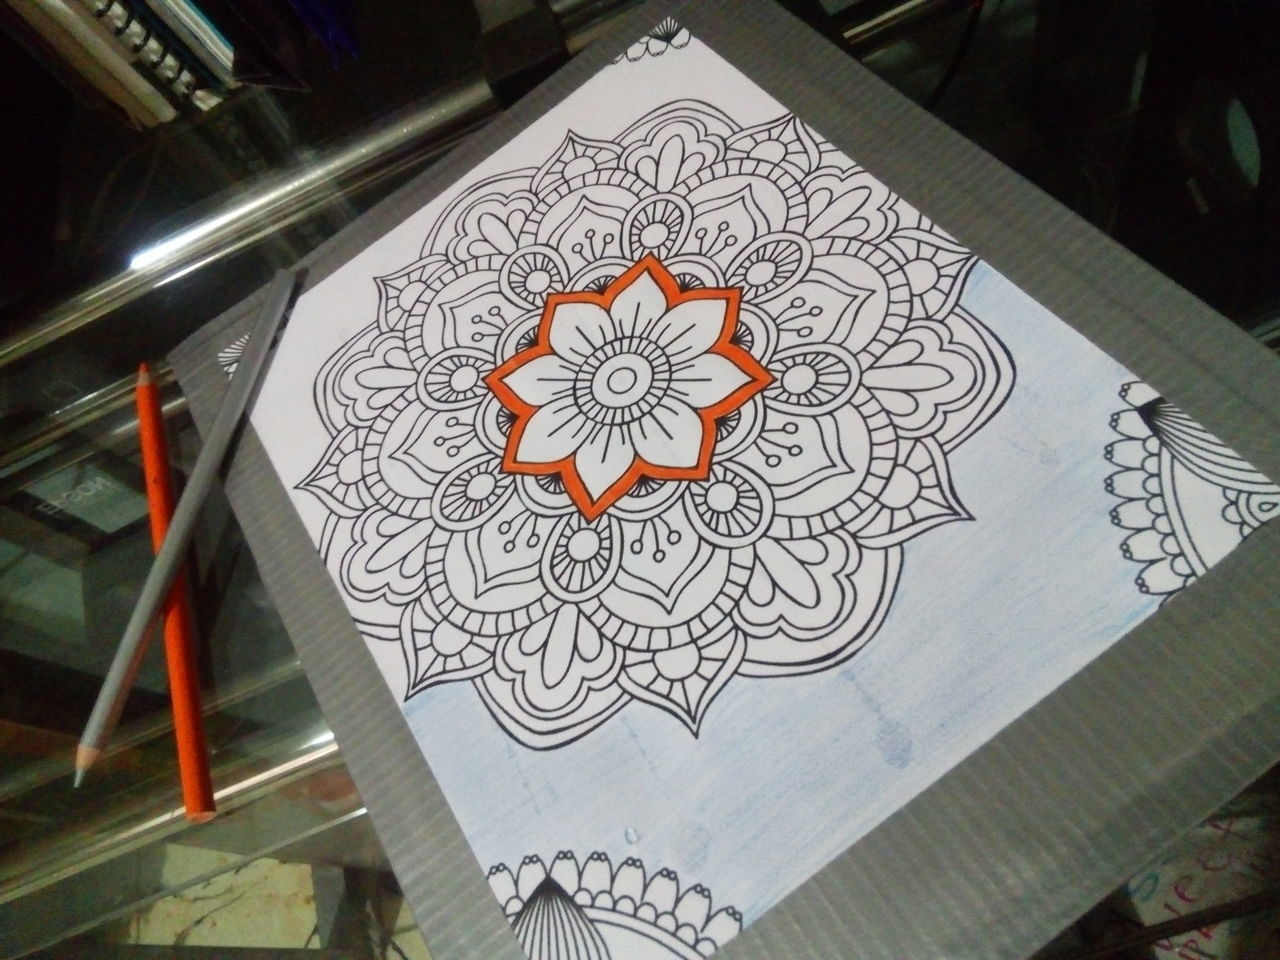 Mandala Flowers Sketch Art Stencil Art Shapes Art And Craft Creativity No People Pattern Indoors  Drawing - Art Product Architecture Day Silver Colored Orange Color